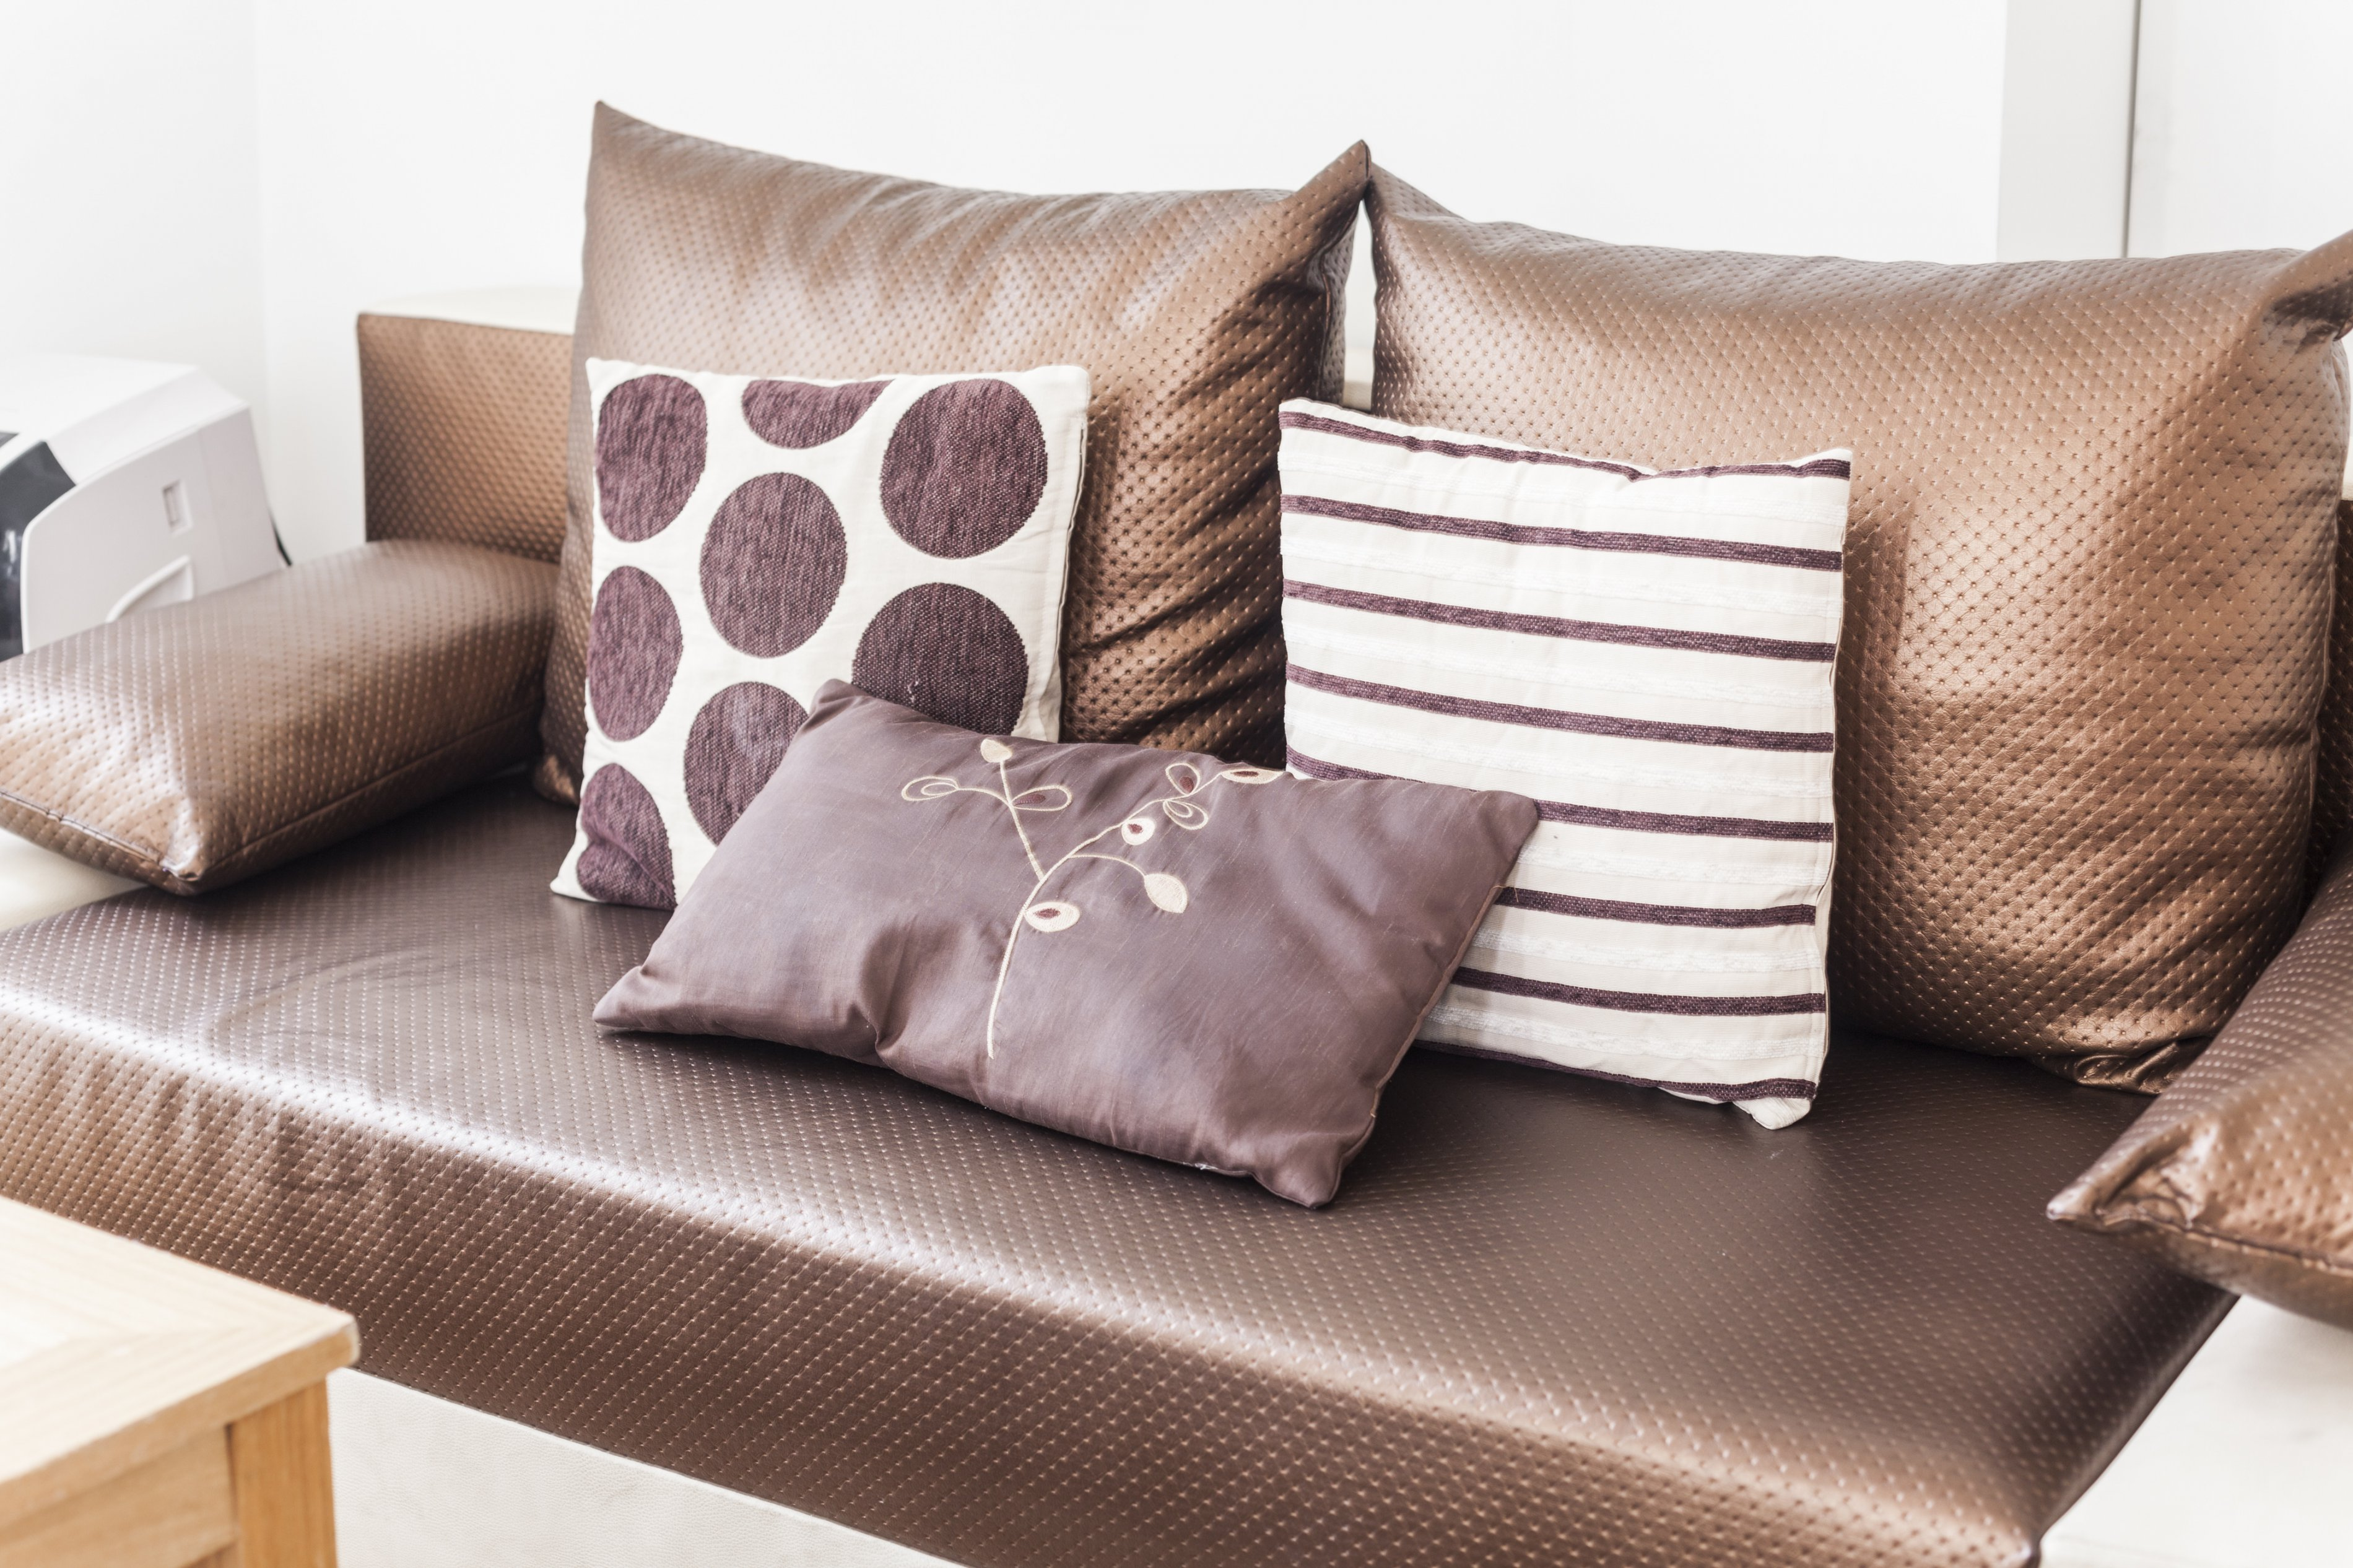 A photo of our Euston apartment's living room sofa